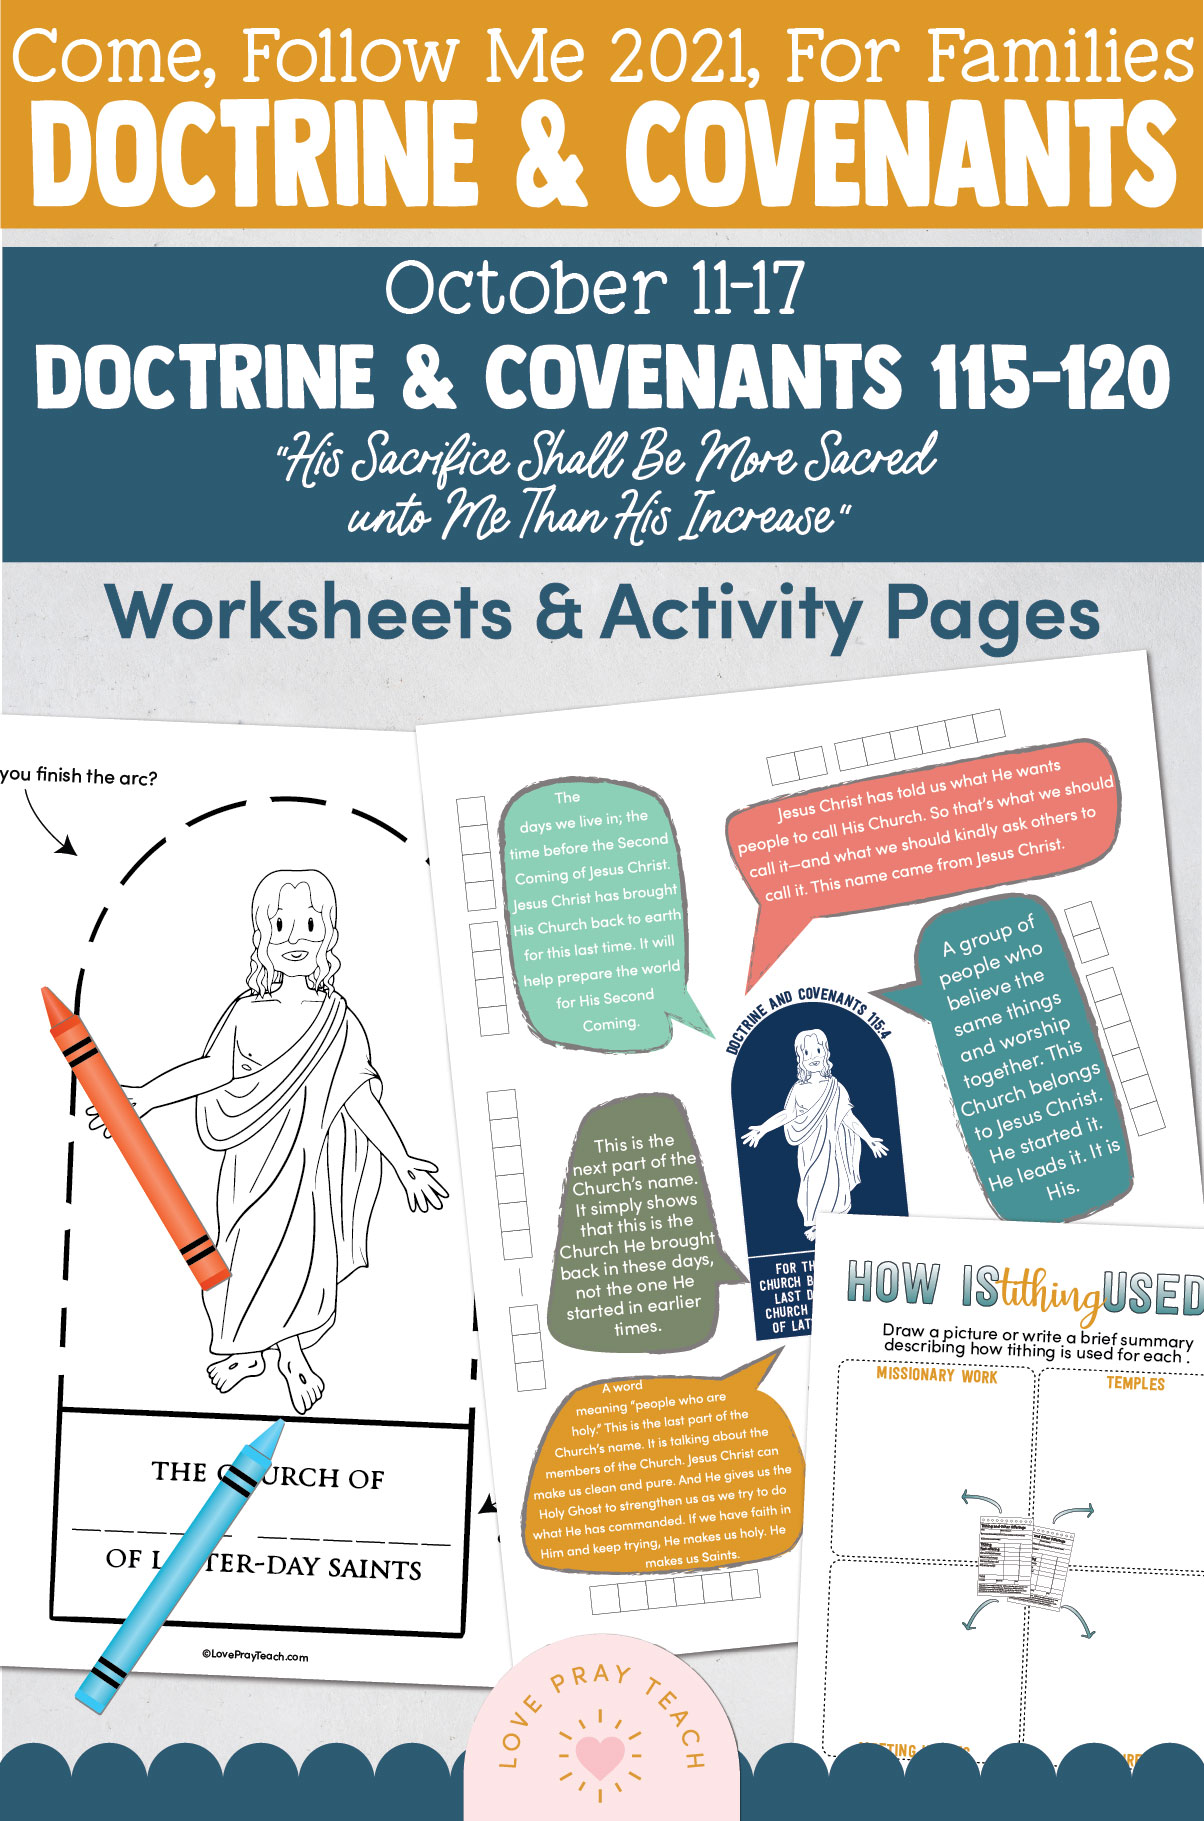 """Come, Follow Me—For Individuals and Families: Doctrine And Covenants 2021, October Week 3 Doctrine and Covenants 115-120:-October 11-17, """"His Sacrifice Shall Be More Sacred unto Me Than His Increase"""""""